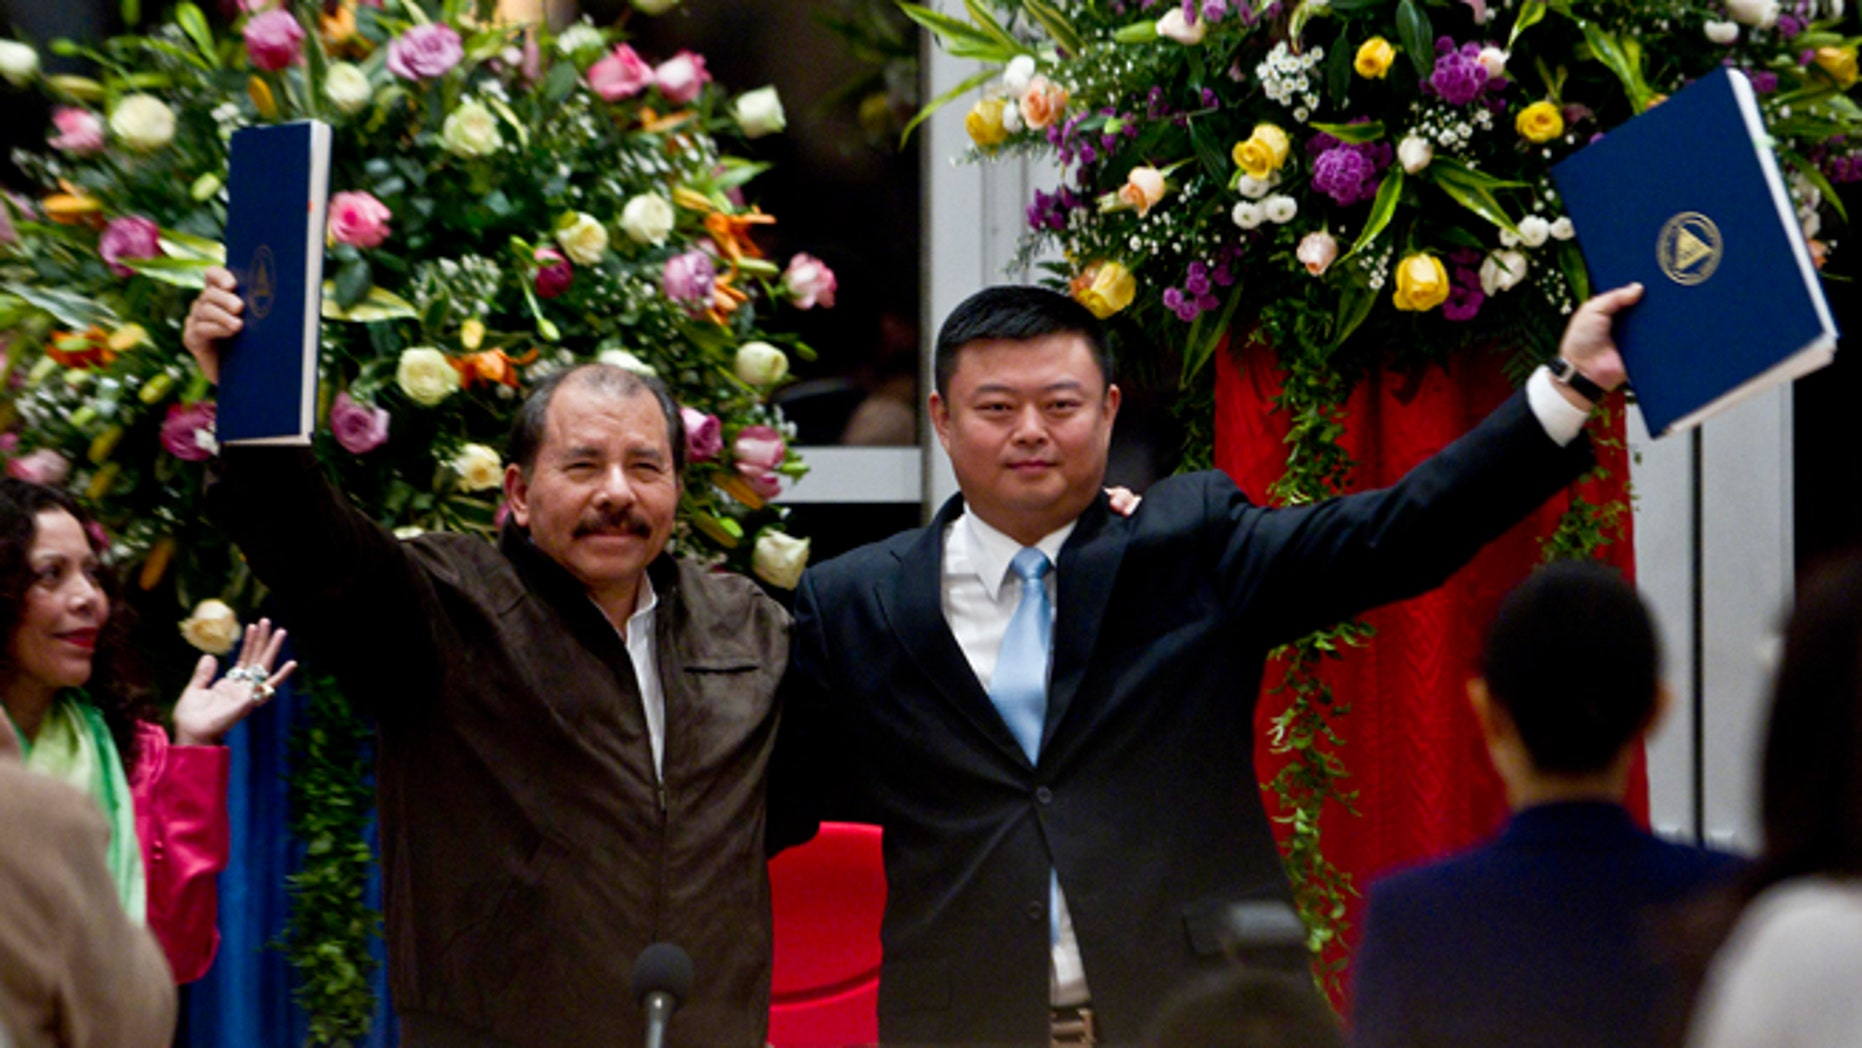 FILE - In this June 14, 2013 file photo, President Daniel Ortega, left, and Chinese businessman Wang Jing hold up a concession agreement for the construction of a multibillion-dollar canal at the Casa de los Pueblos in Managua. Nicaraguas government and Chinas HKND Group on Monday July 7, 2014, unveiled the route of a proposed inter-ocean canal to compete with the Panama Canal that Sandinista officials hope with lift the Central American country out of poverty. (AP Photo/Esteban Felix, File)